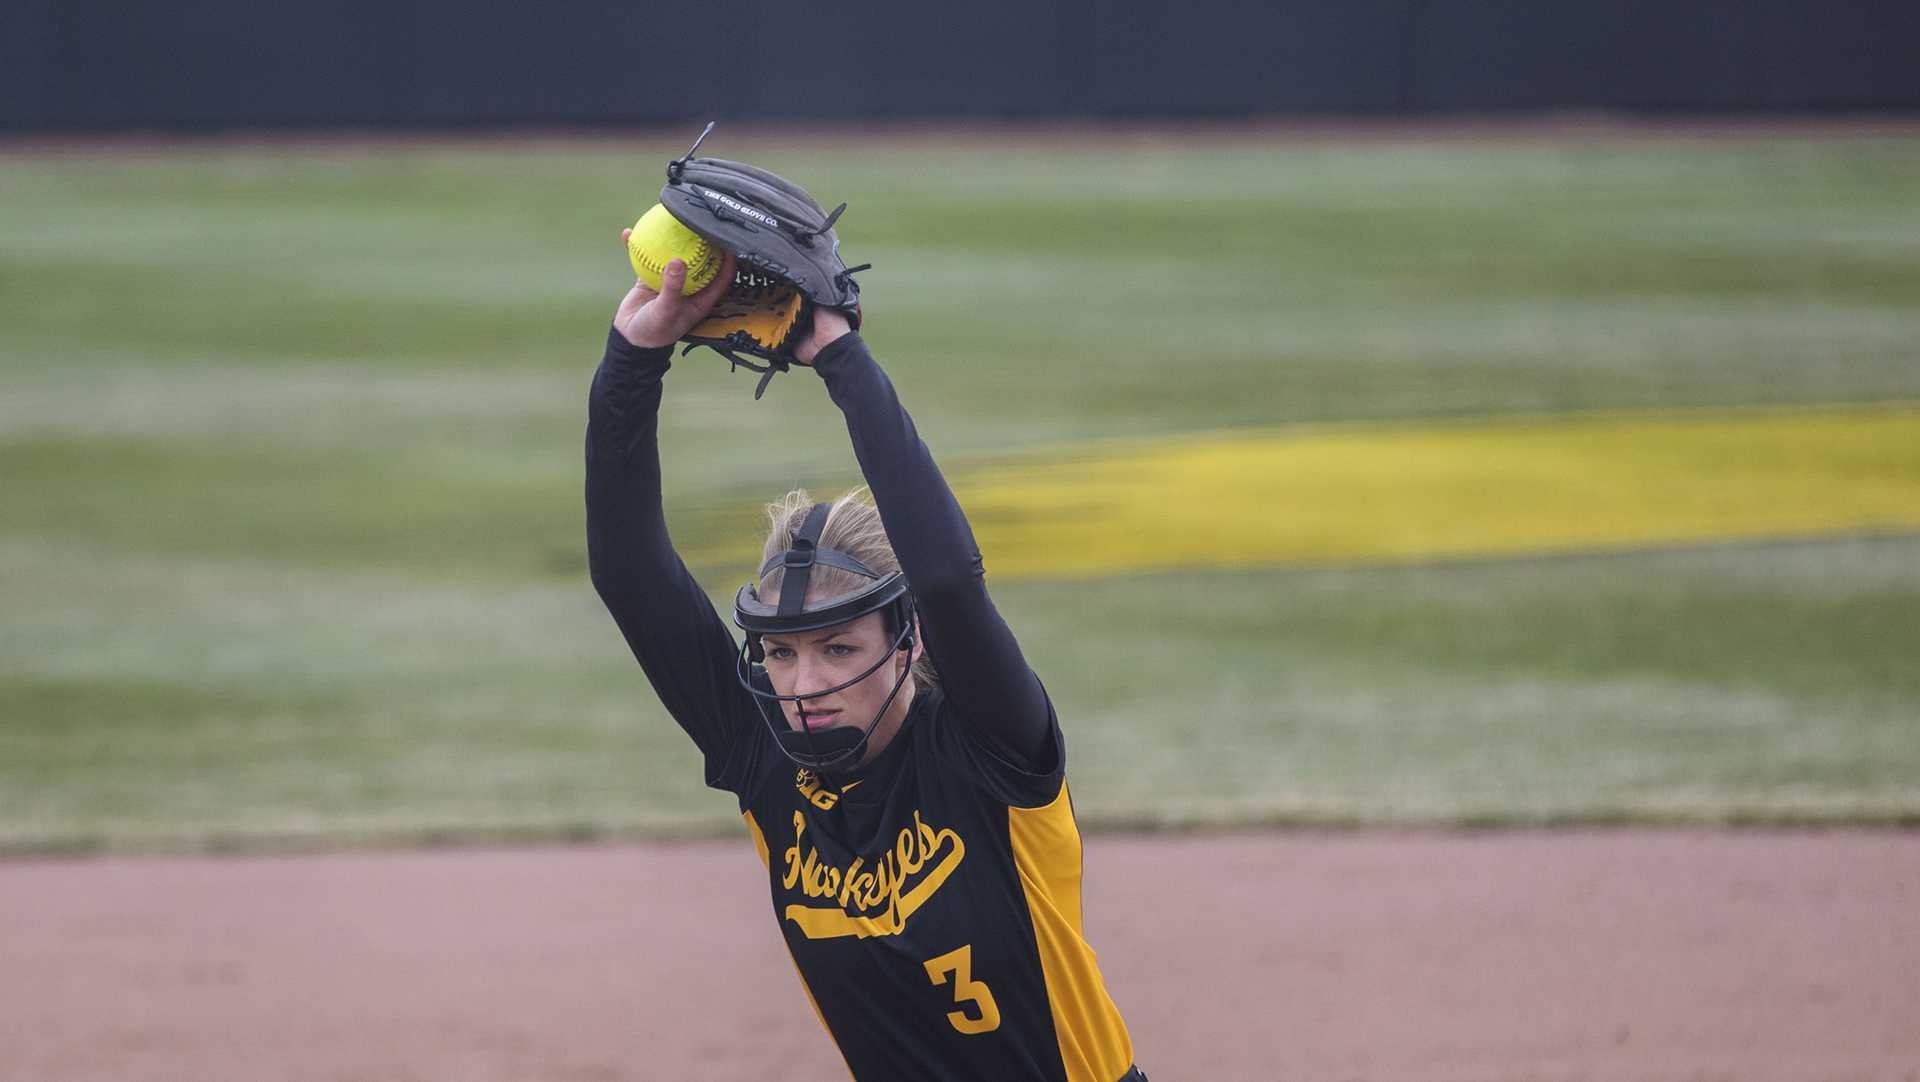 Iowa's Allison Doocy pitches during the Iowa/Wisconsin softball game at Bob Pearl Field  on Sunday, April 8, 2018. The Hawkeyes defeated the Badgers in the third game of the series, 5-3. (Lily Smith/The Daily Iowan)